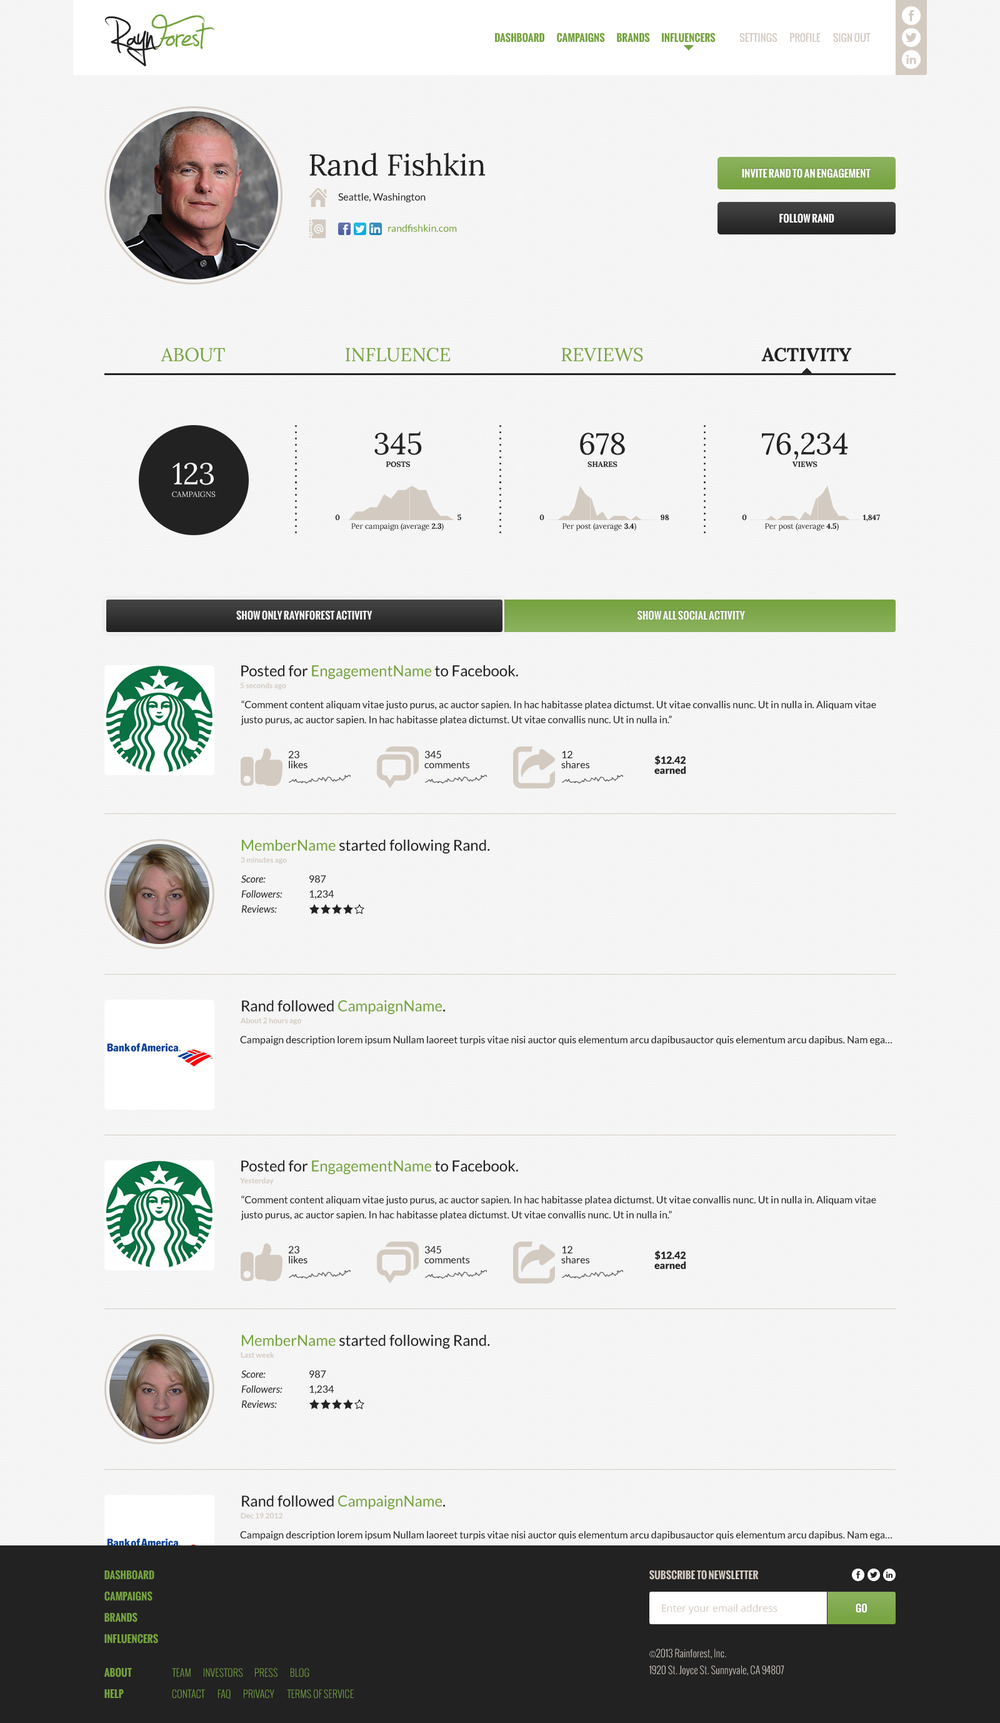 Influencer profile pages